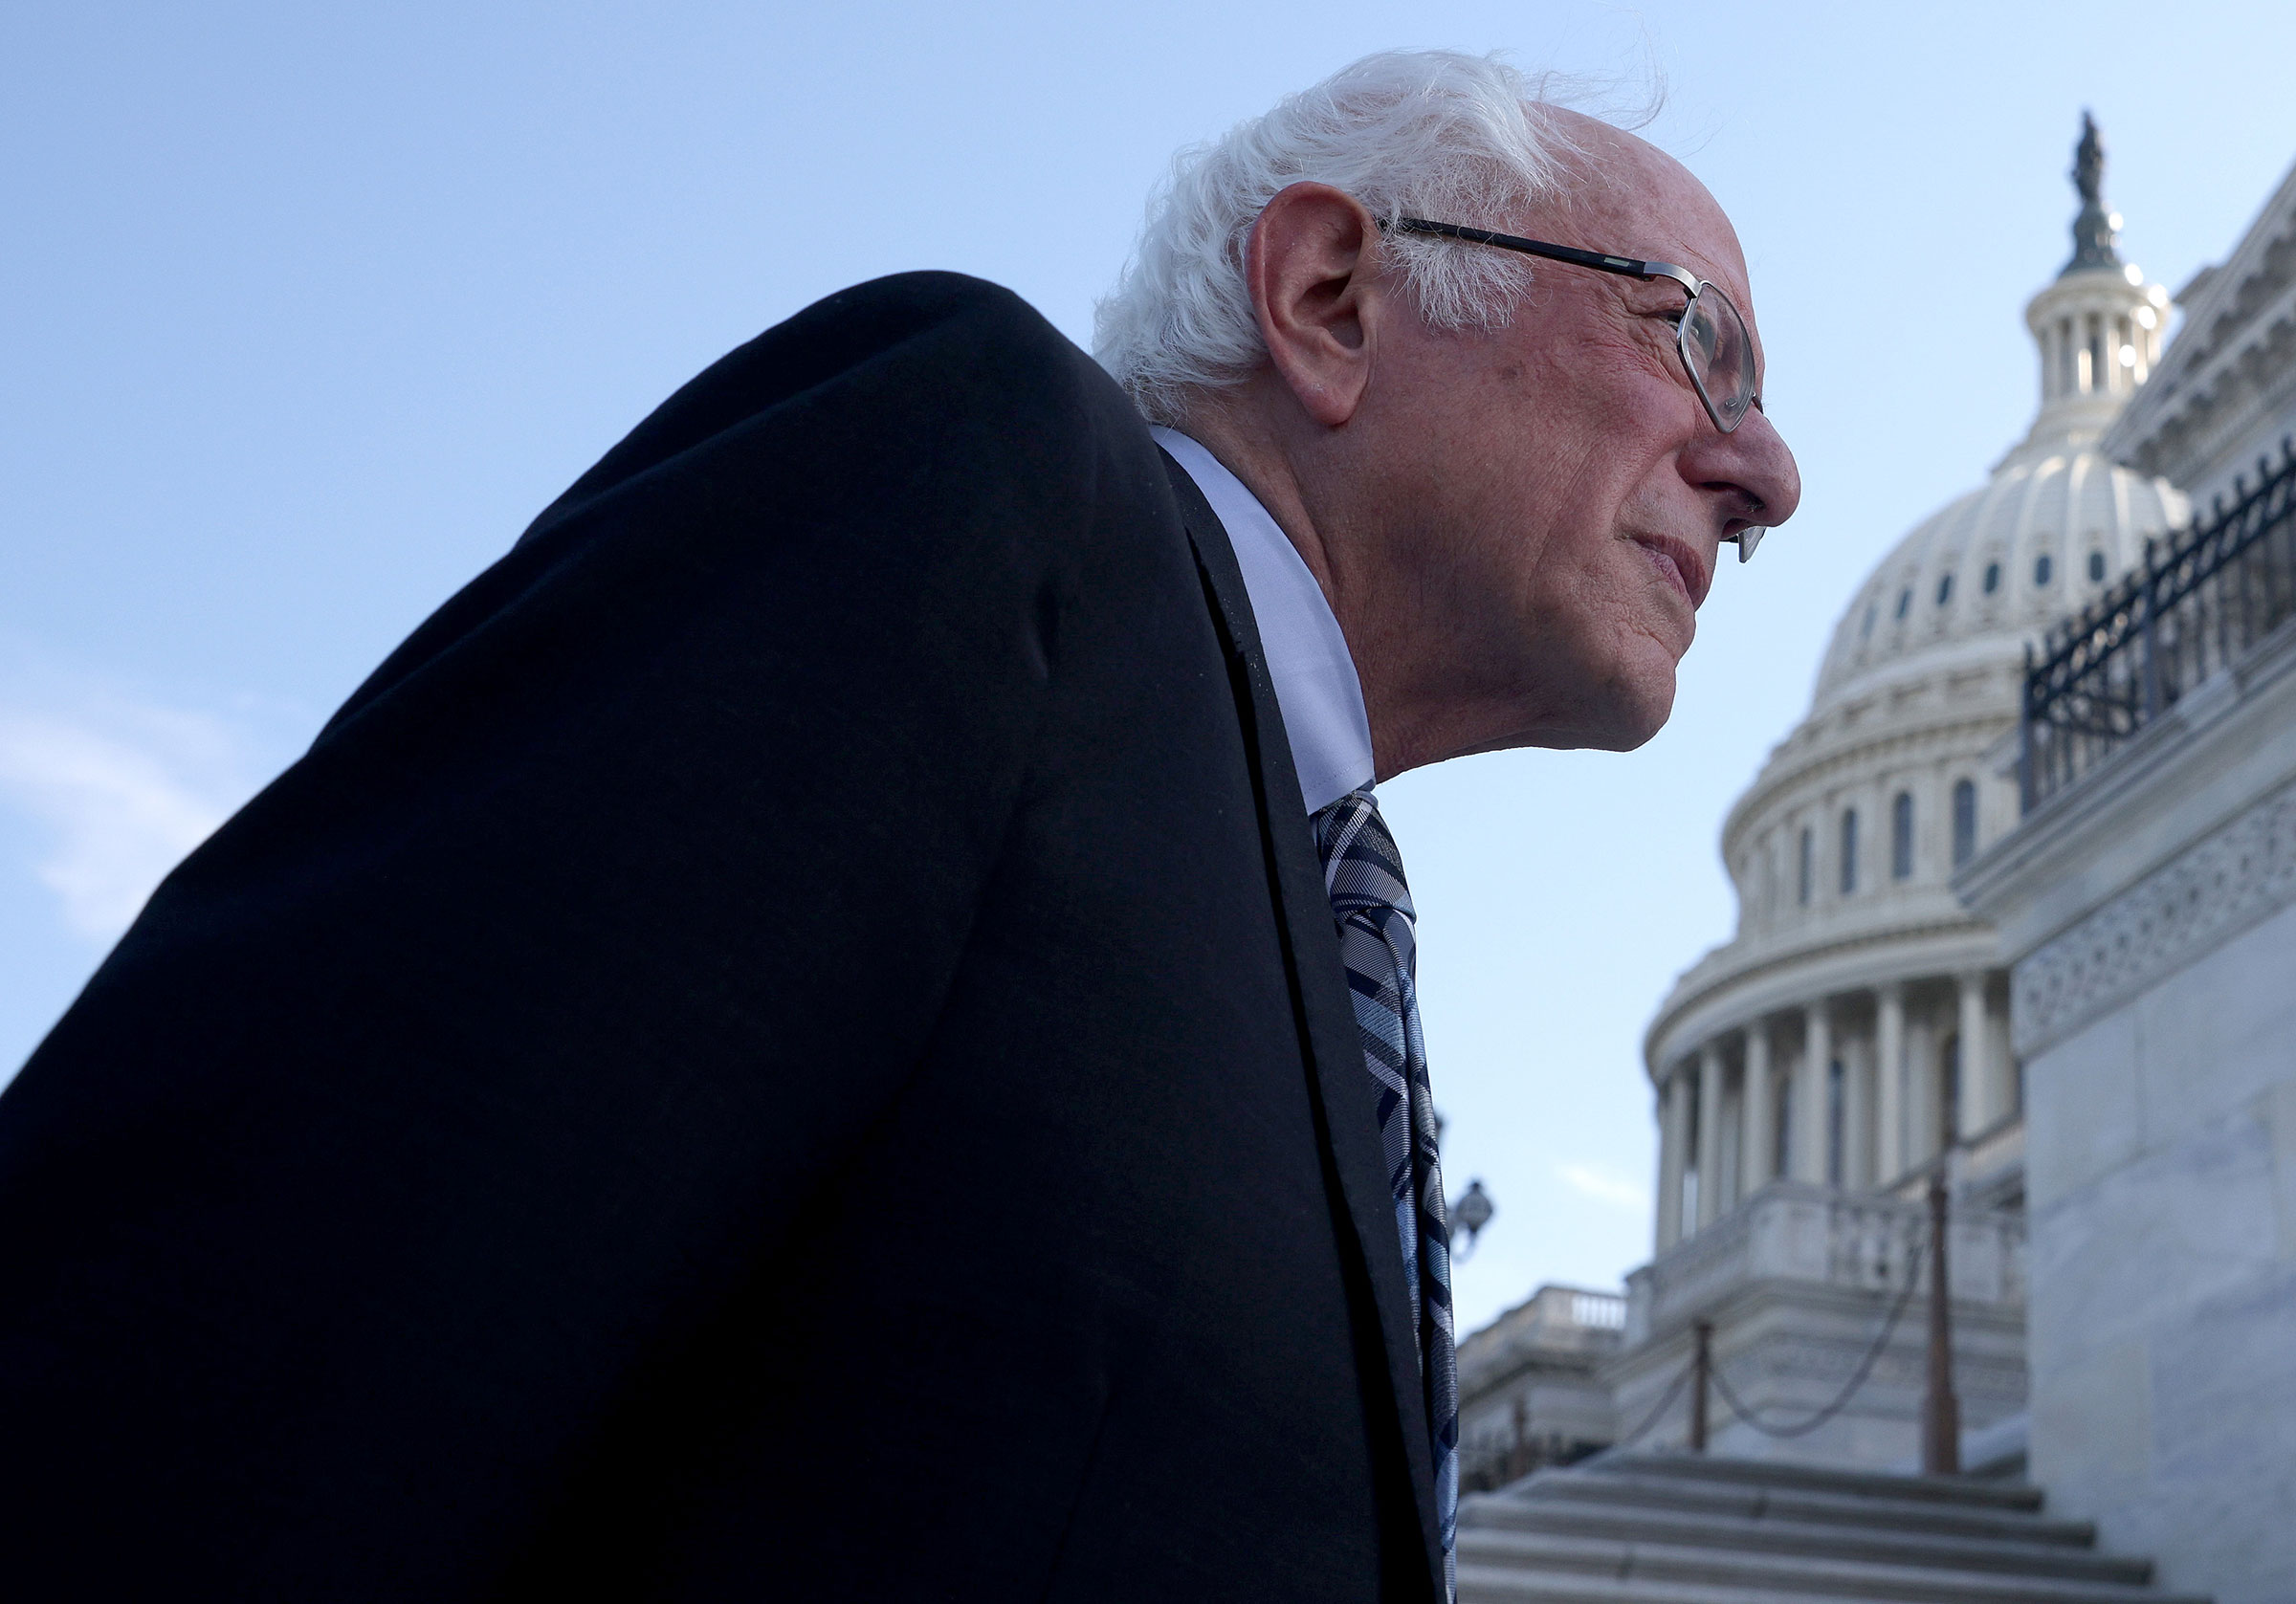 Sen. Bernie Sanders arrives at the Capitol after meeting with President Joe Biden at the White House in Washington, on July 12, 2021.